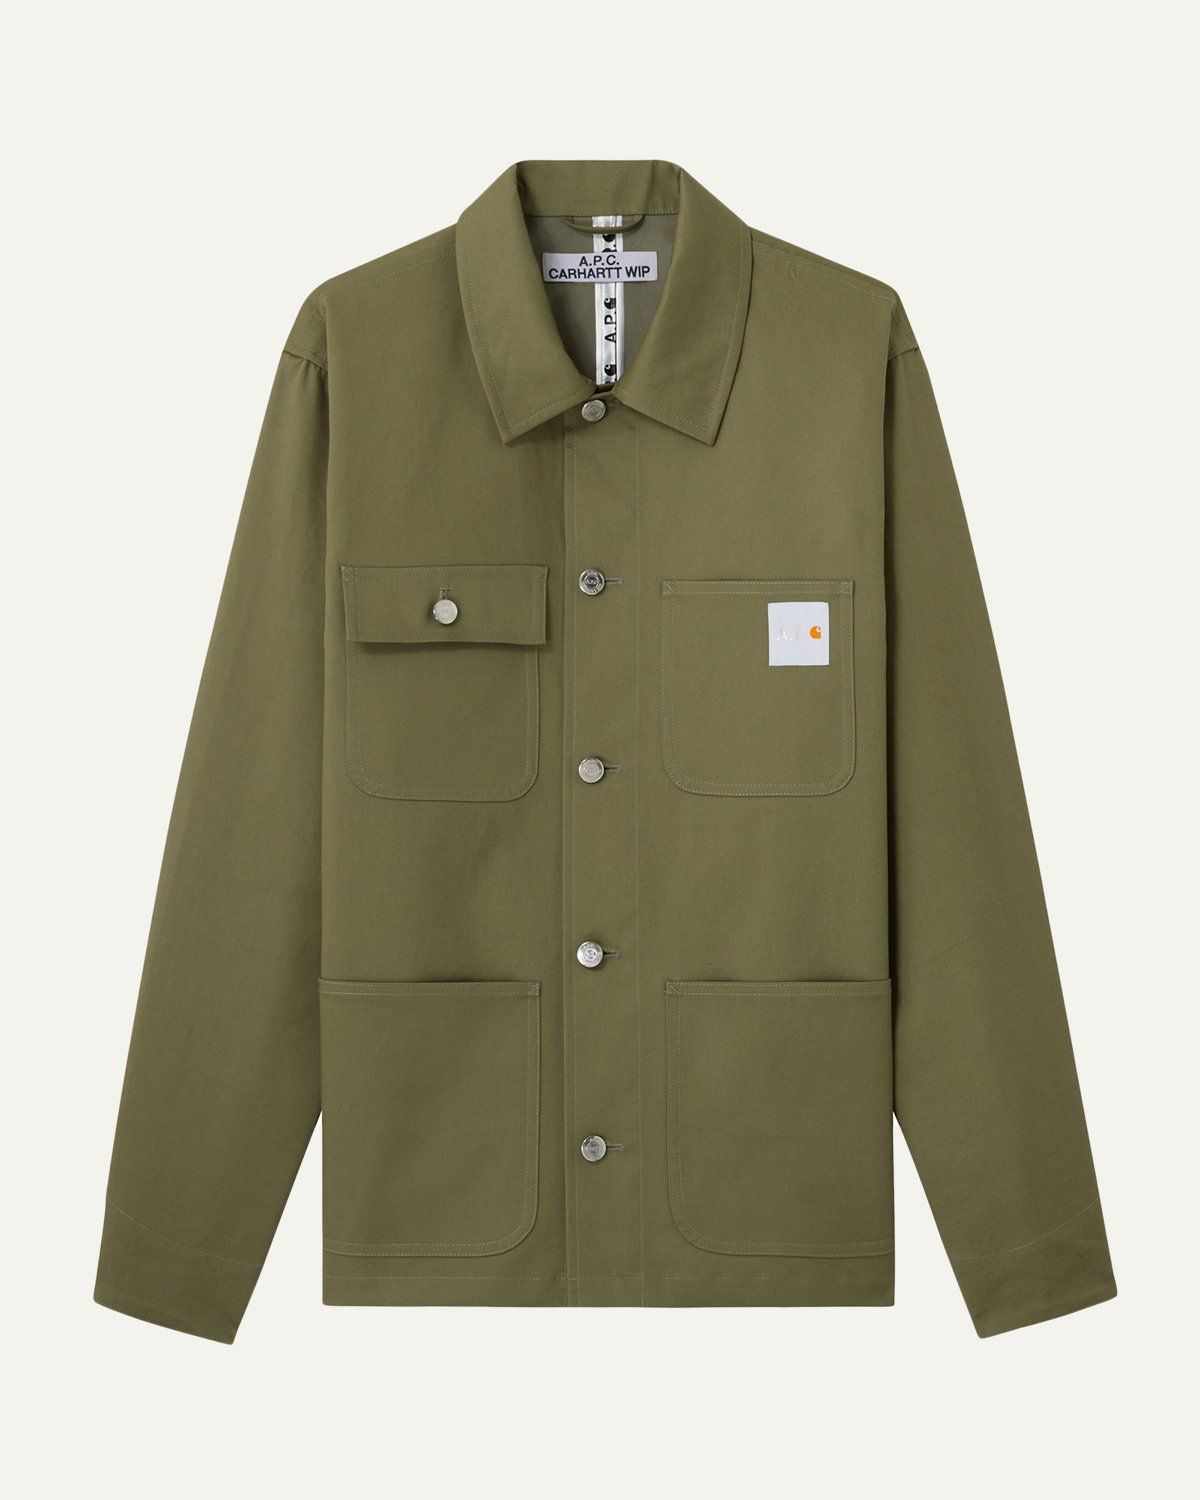 A.P.C. x Carhartt WIP - Work Jacket - Image 1